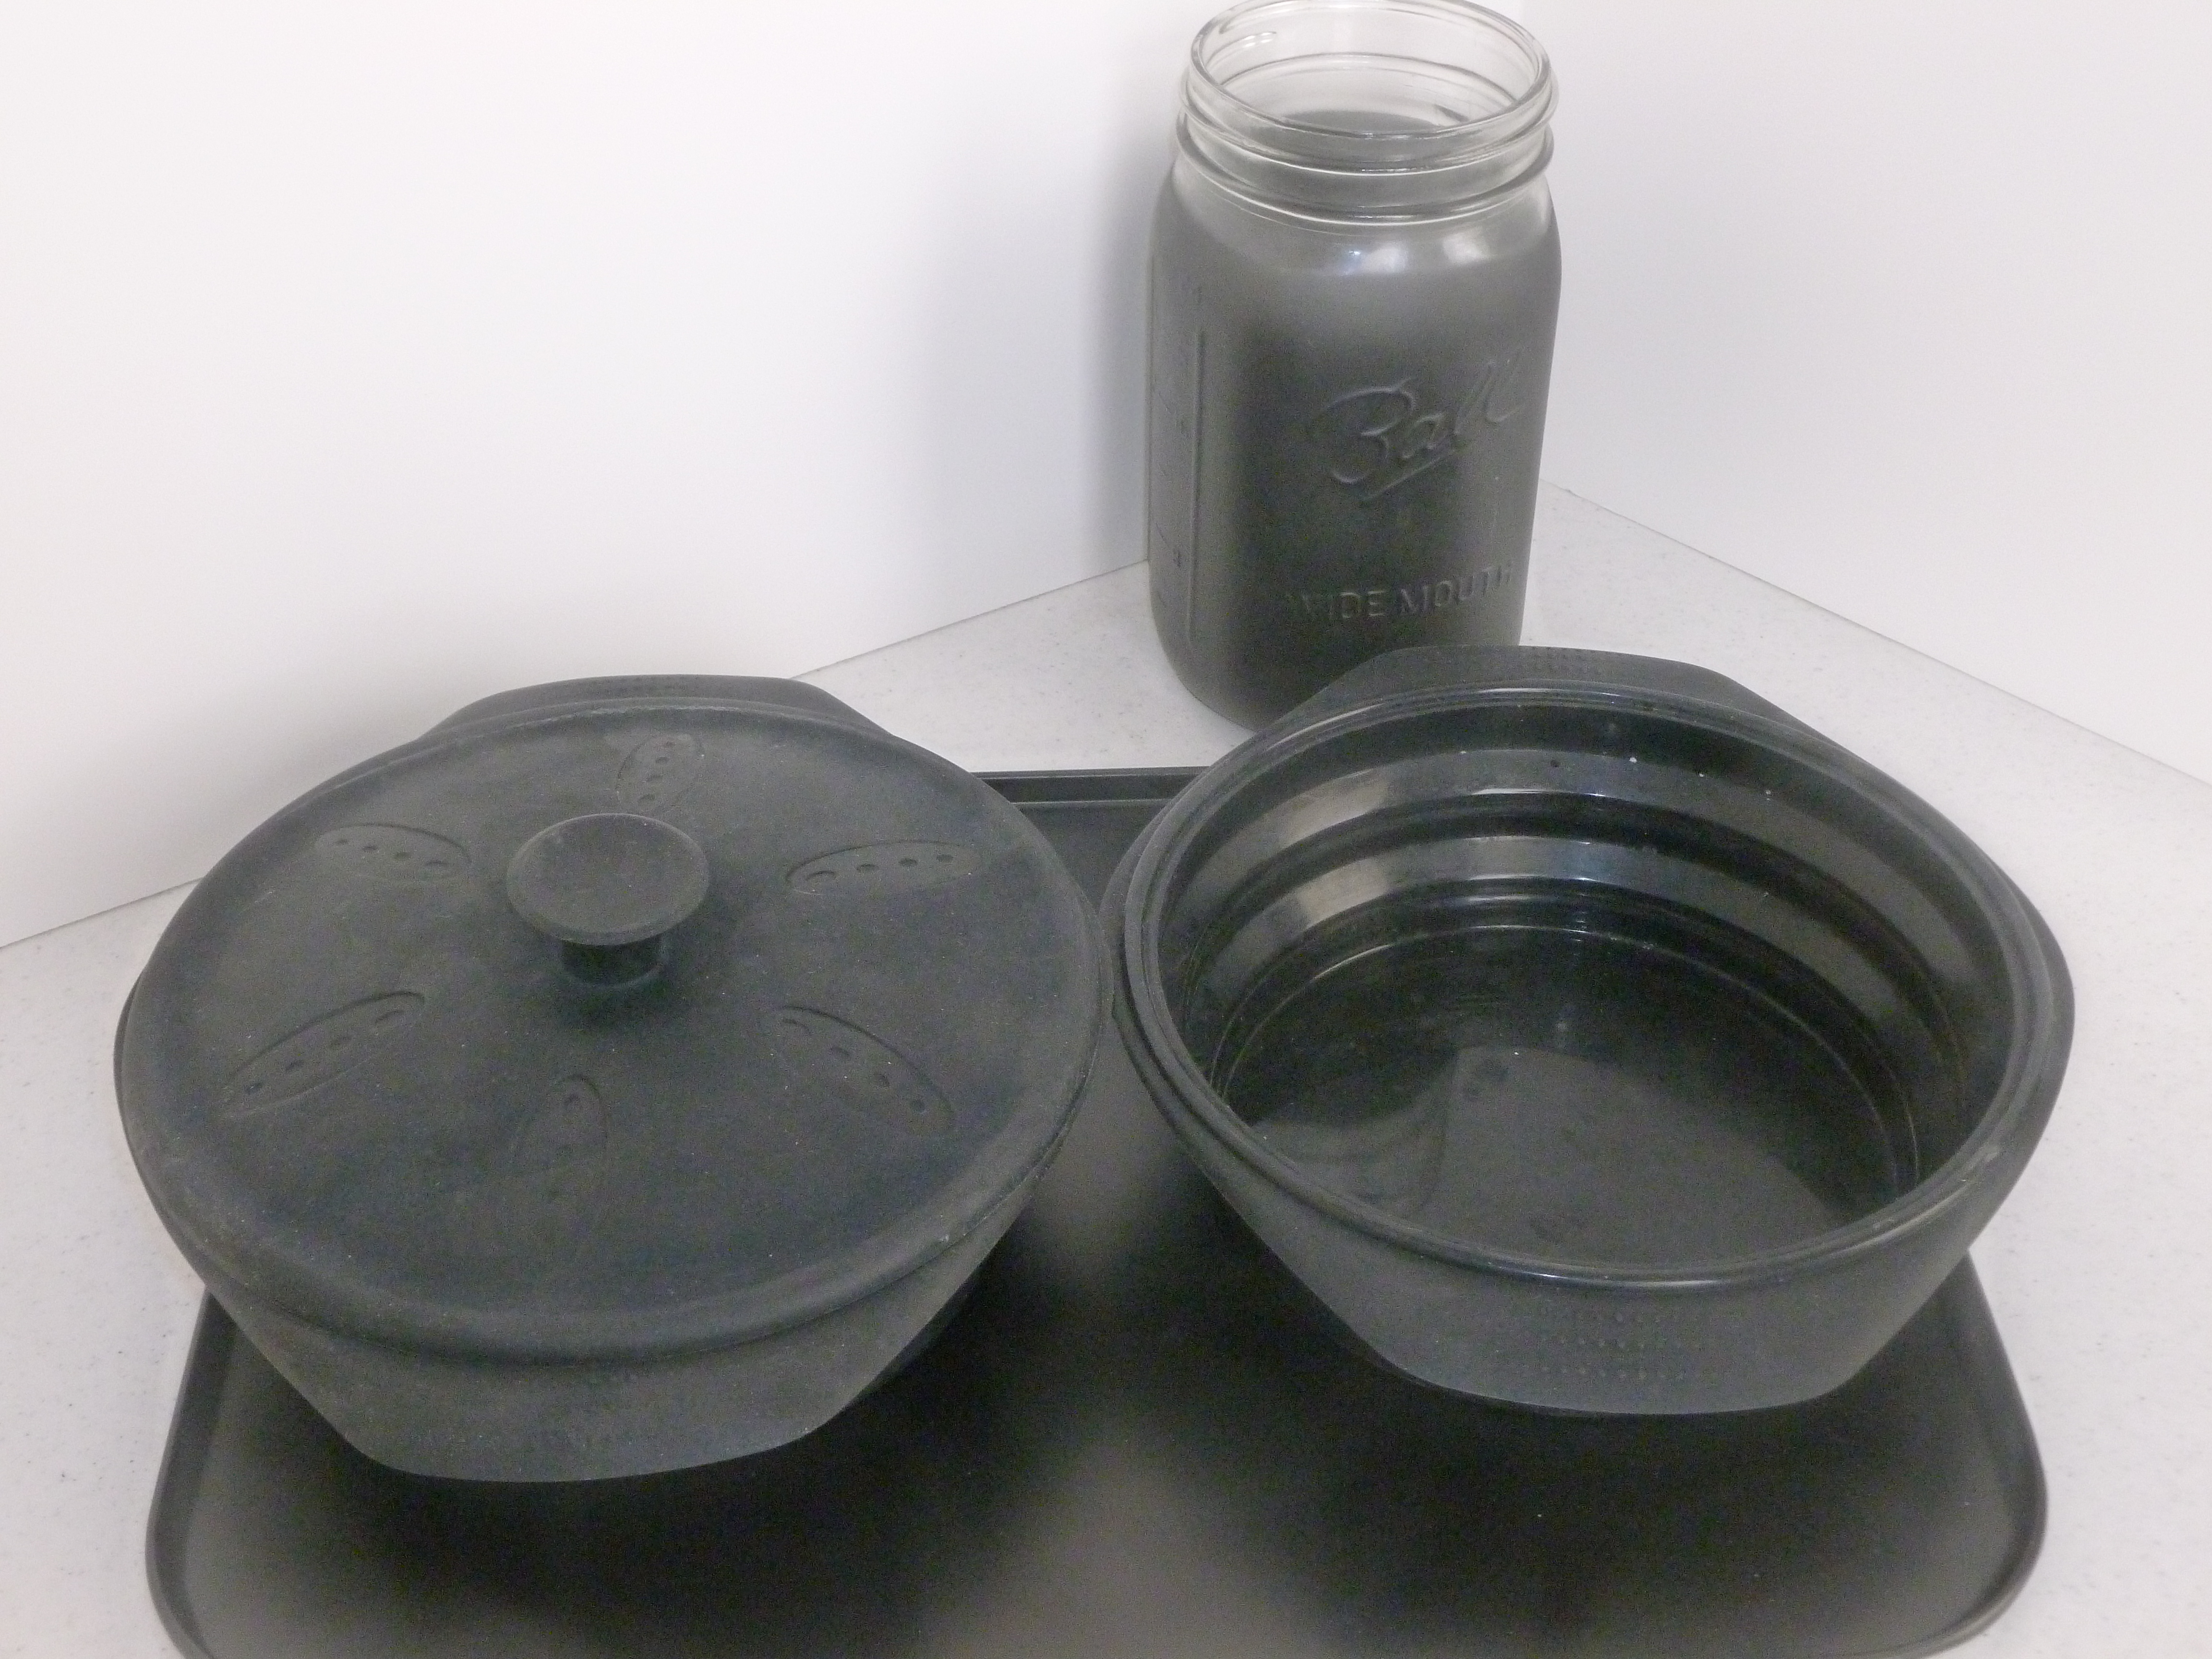 Black Silicon pots, black cookie sheet, black painted canning jar Cookware Guide for solar oven cooking